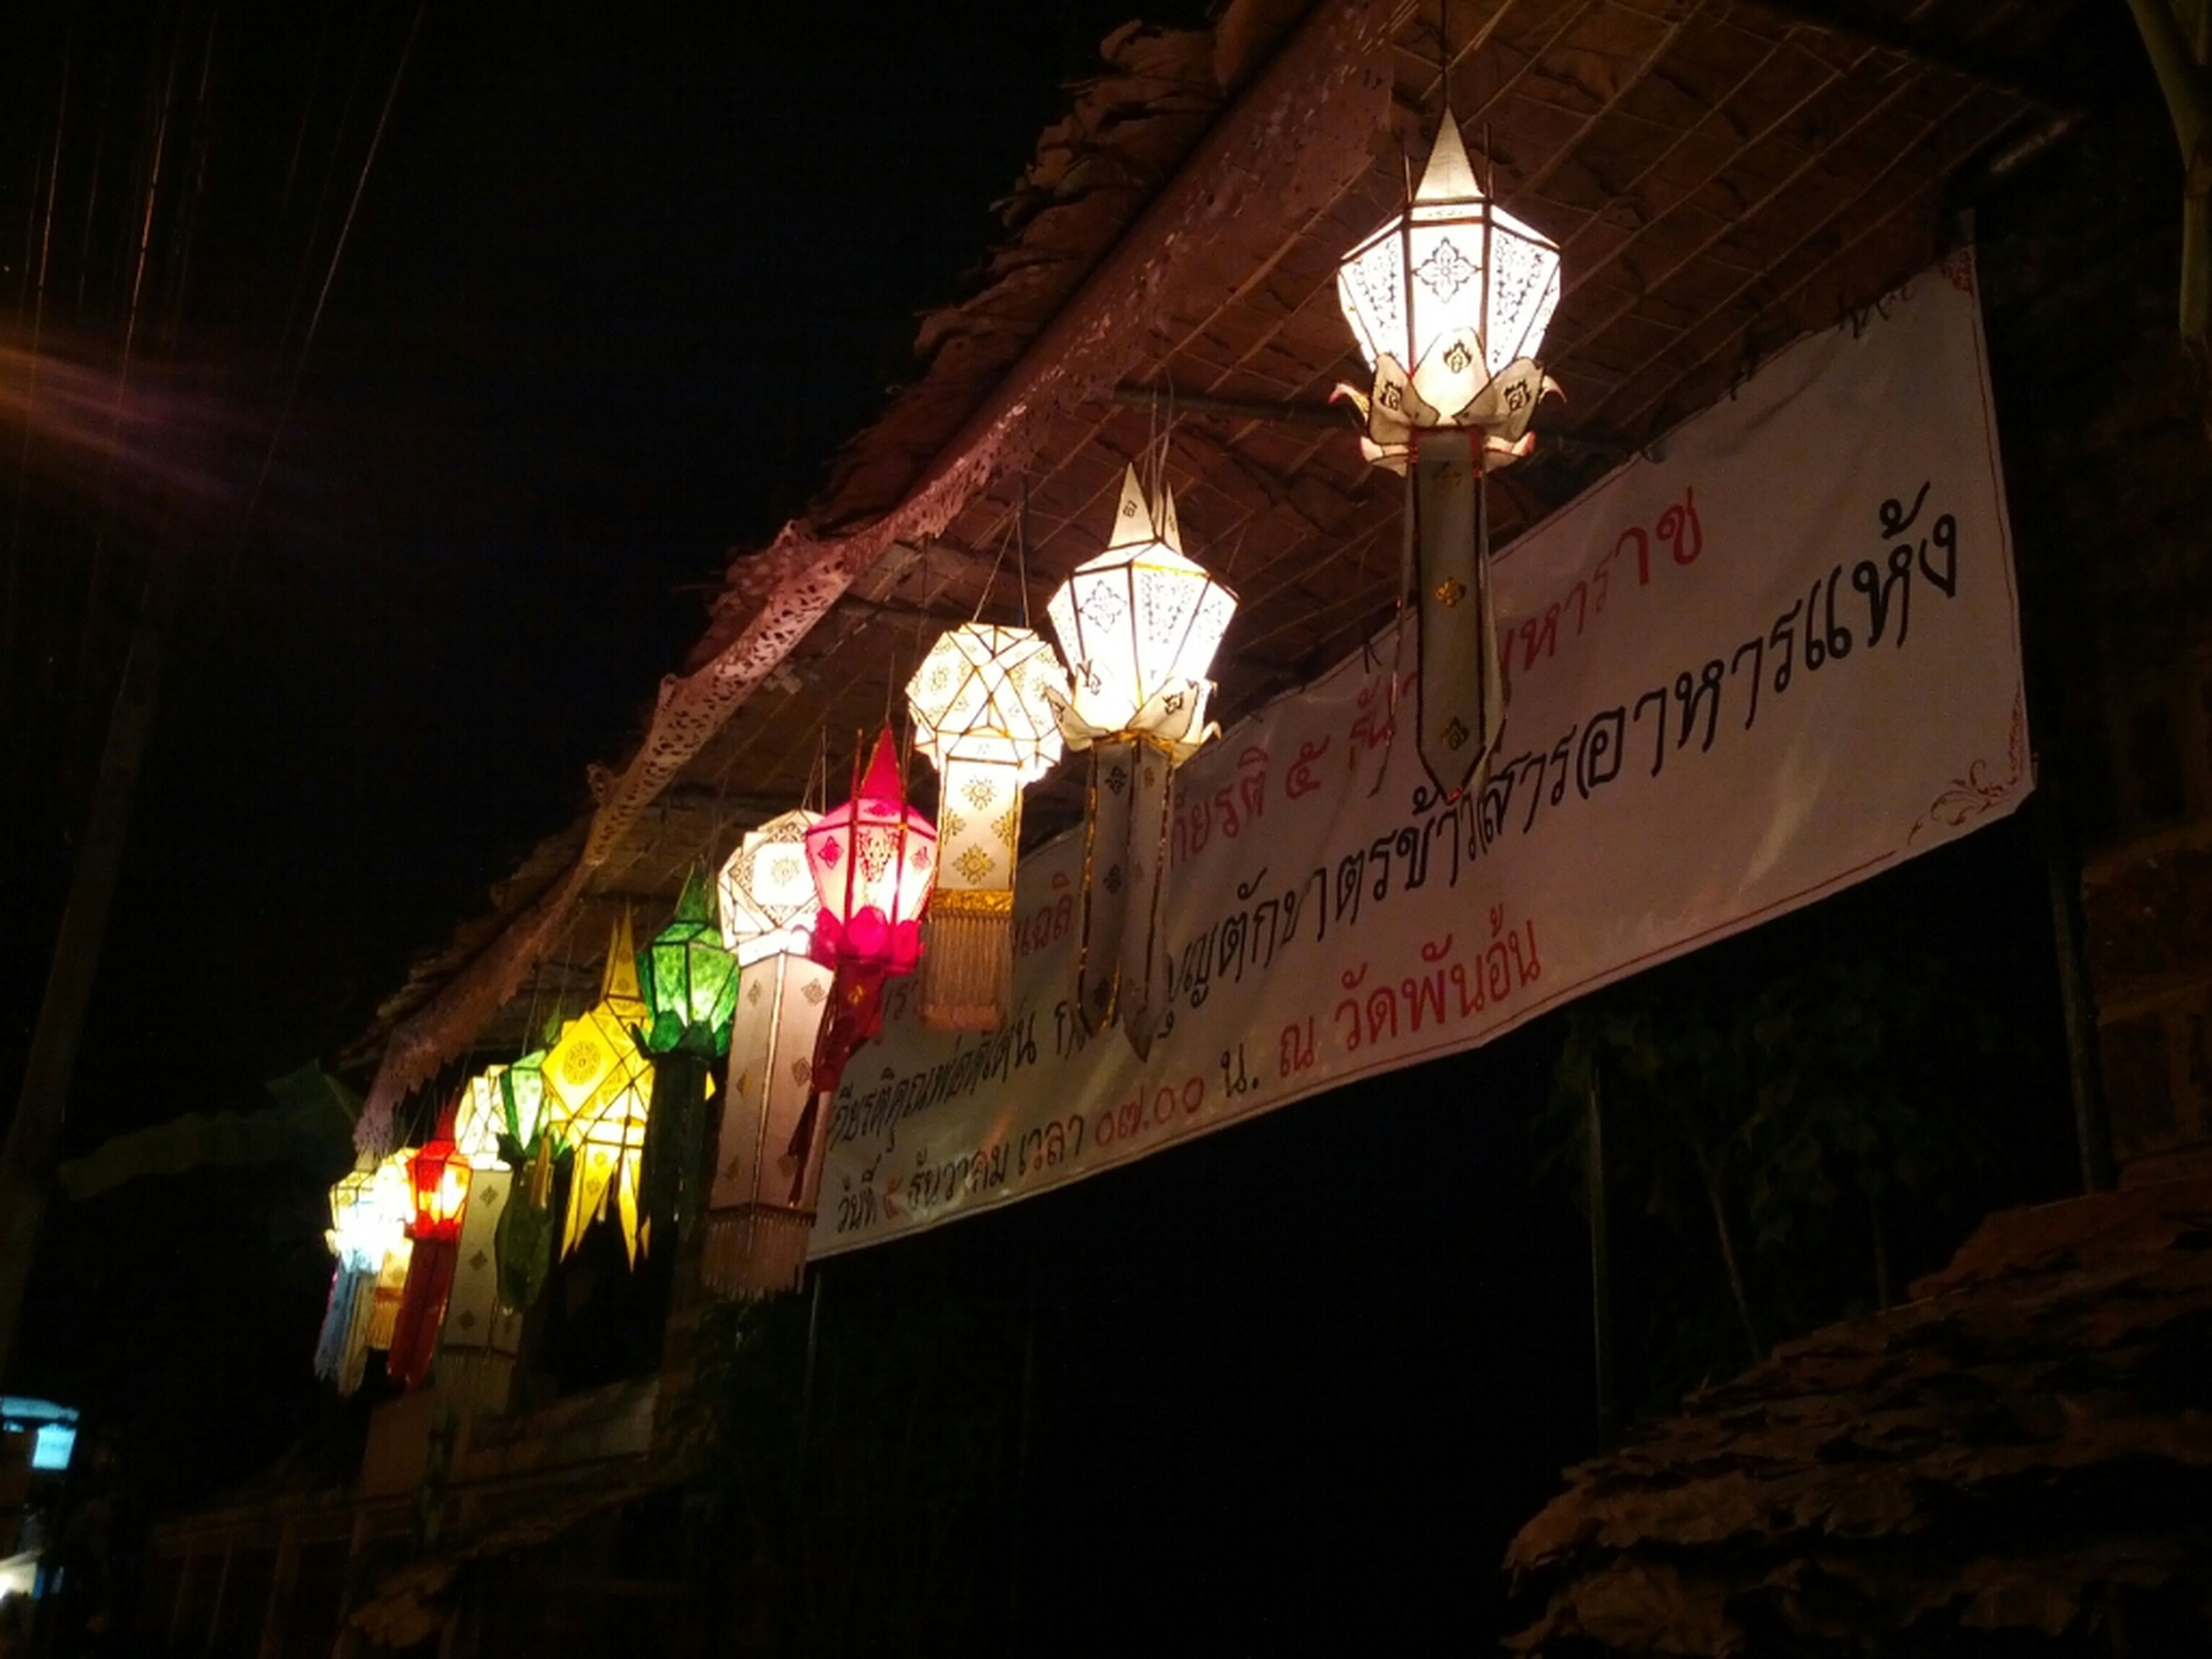 built structure, architecture, illuminated, night, building exterior, text, low angle view, lighting equipment, western script, lantern, non-western script, religion, communication, outdoors, building, hanging, no people, place of worship, wall - building feature, spirituality